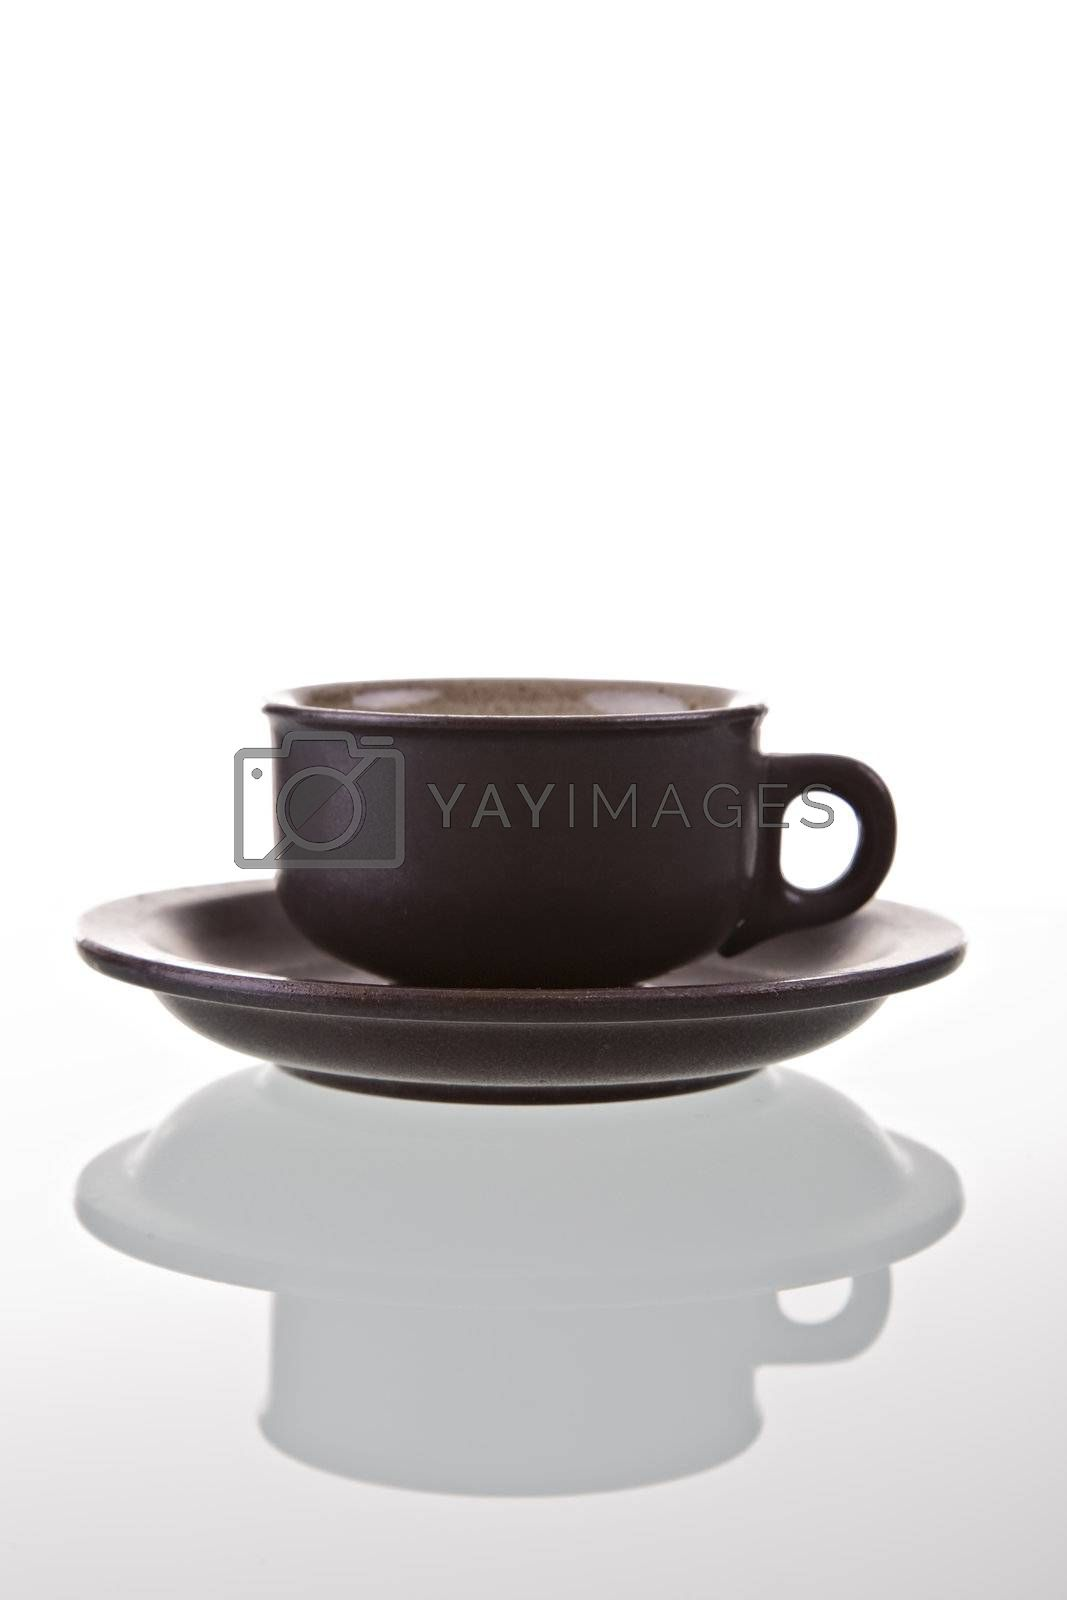 Coffee cup with reflection, isolated on white background.